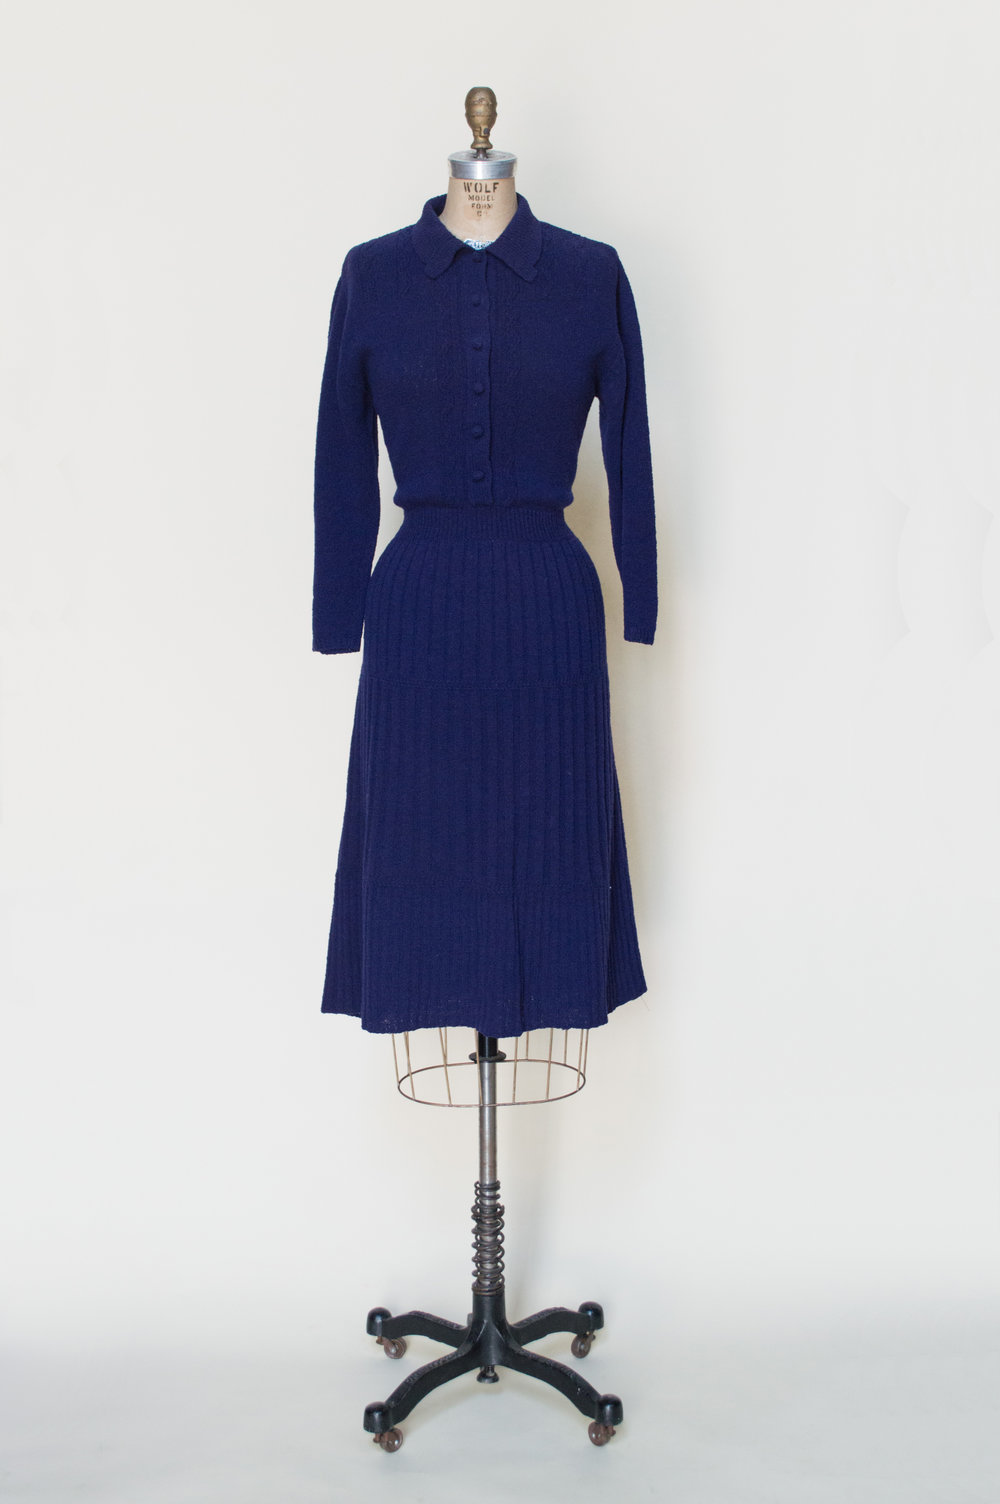 1940s Sweater Dress